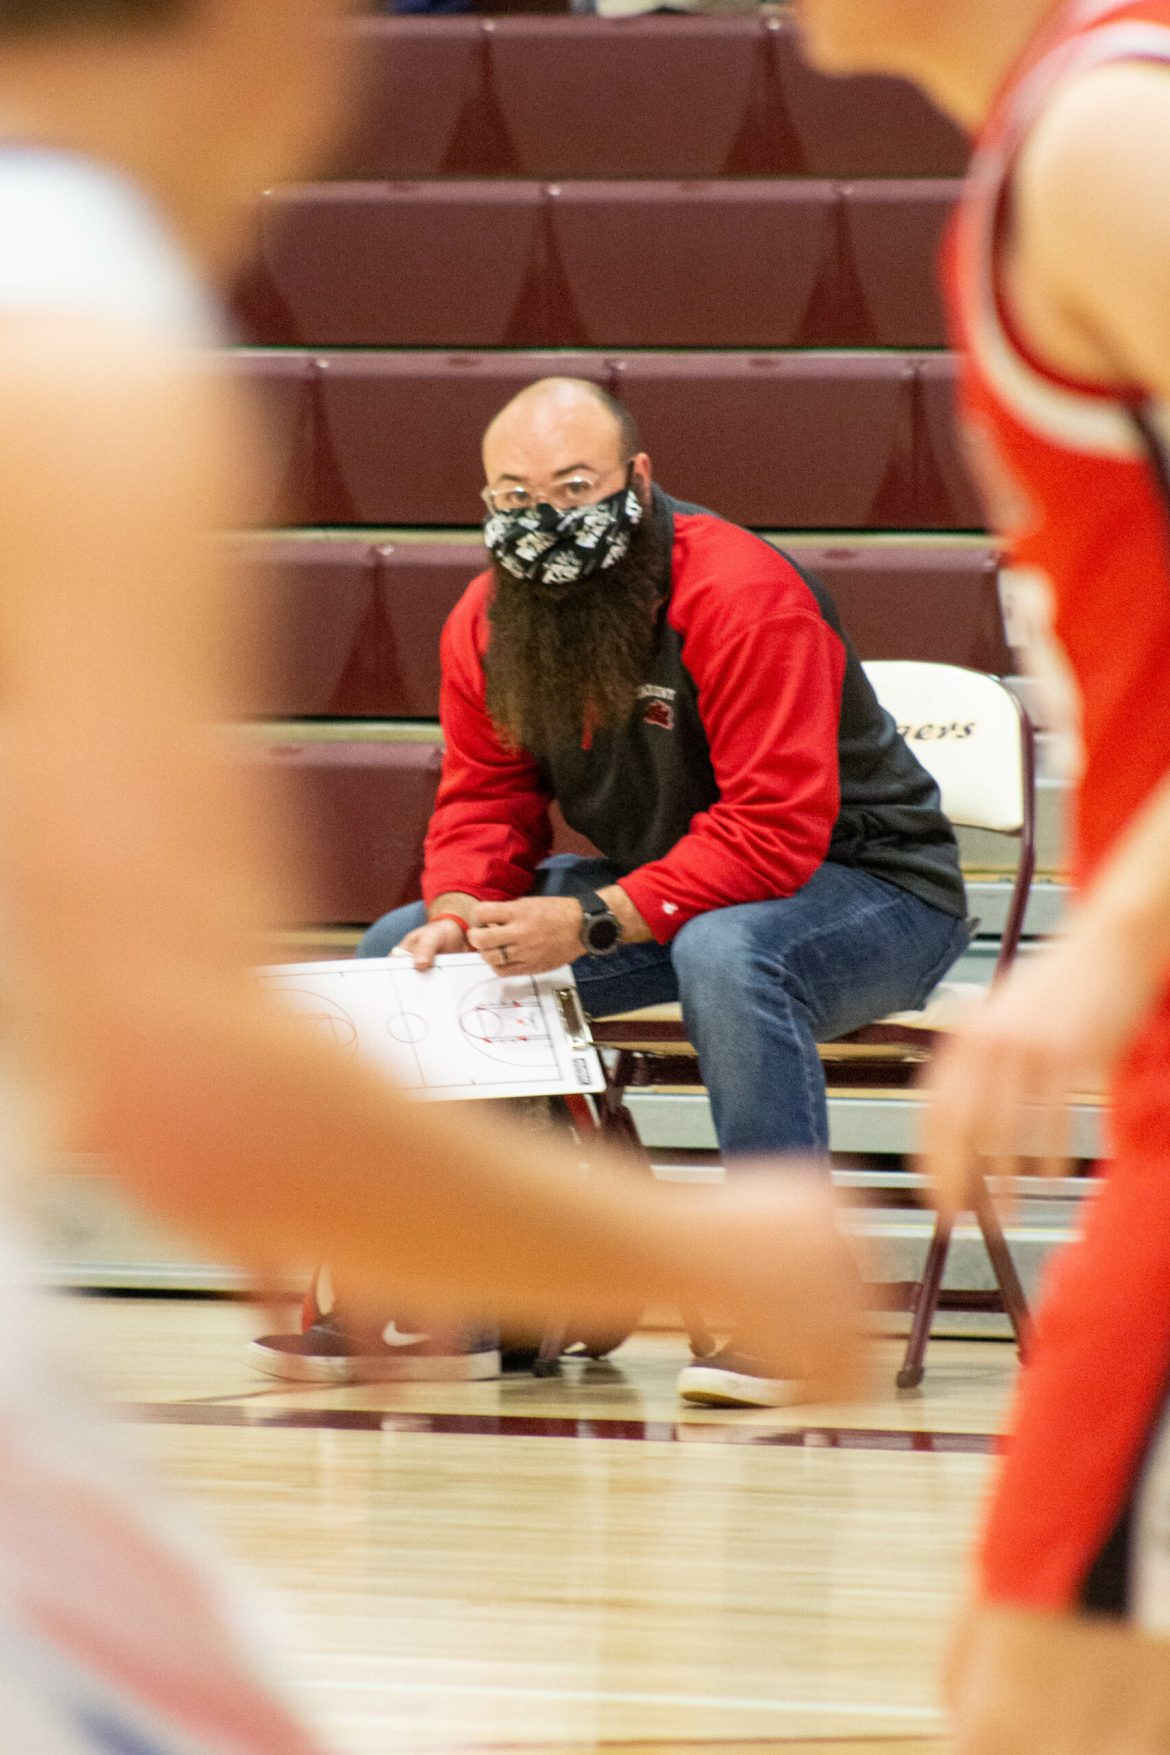 Continuing Wayne's legacy: HutchCC instructor coaching for cousin